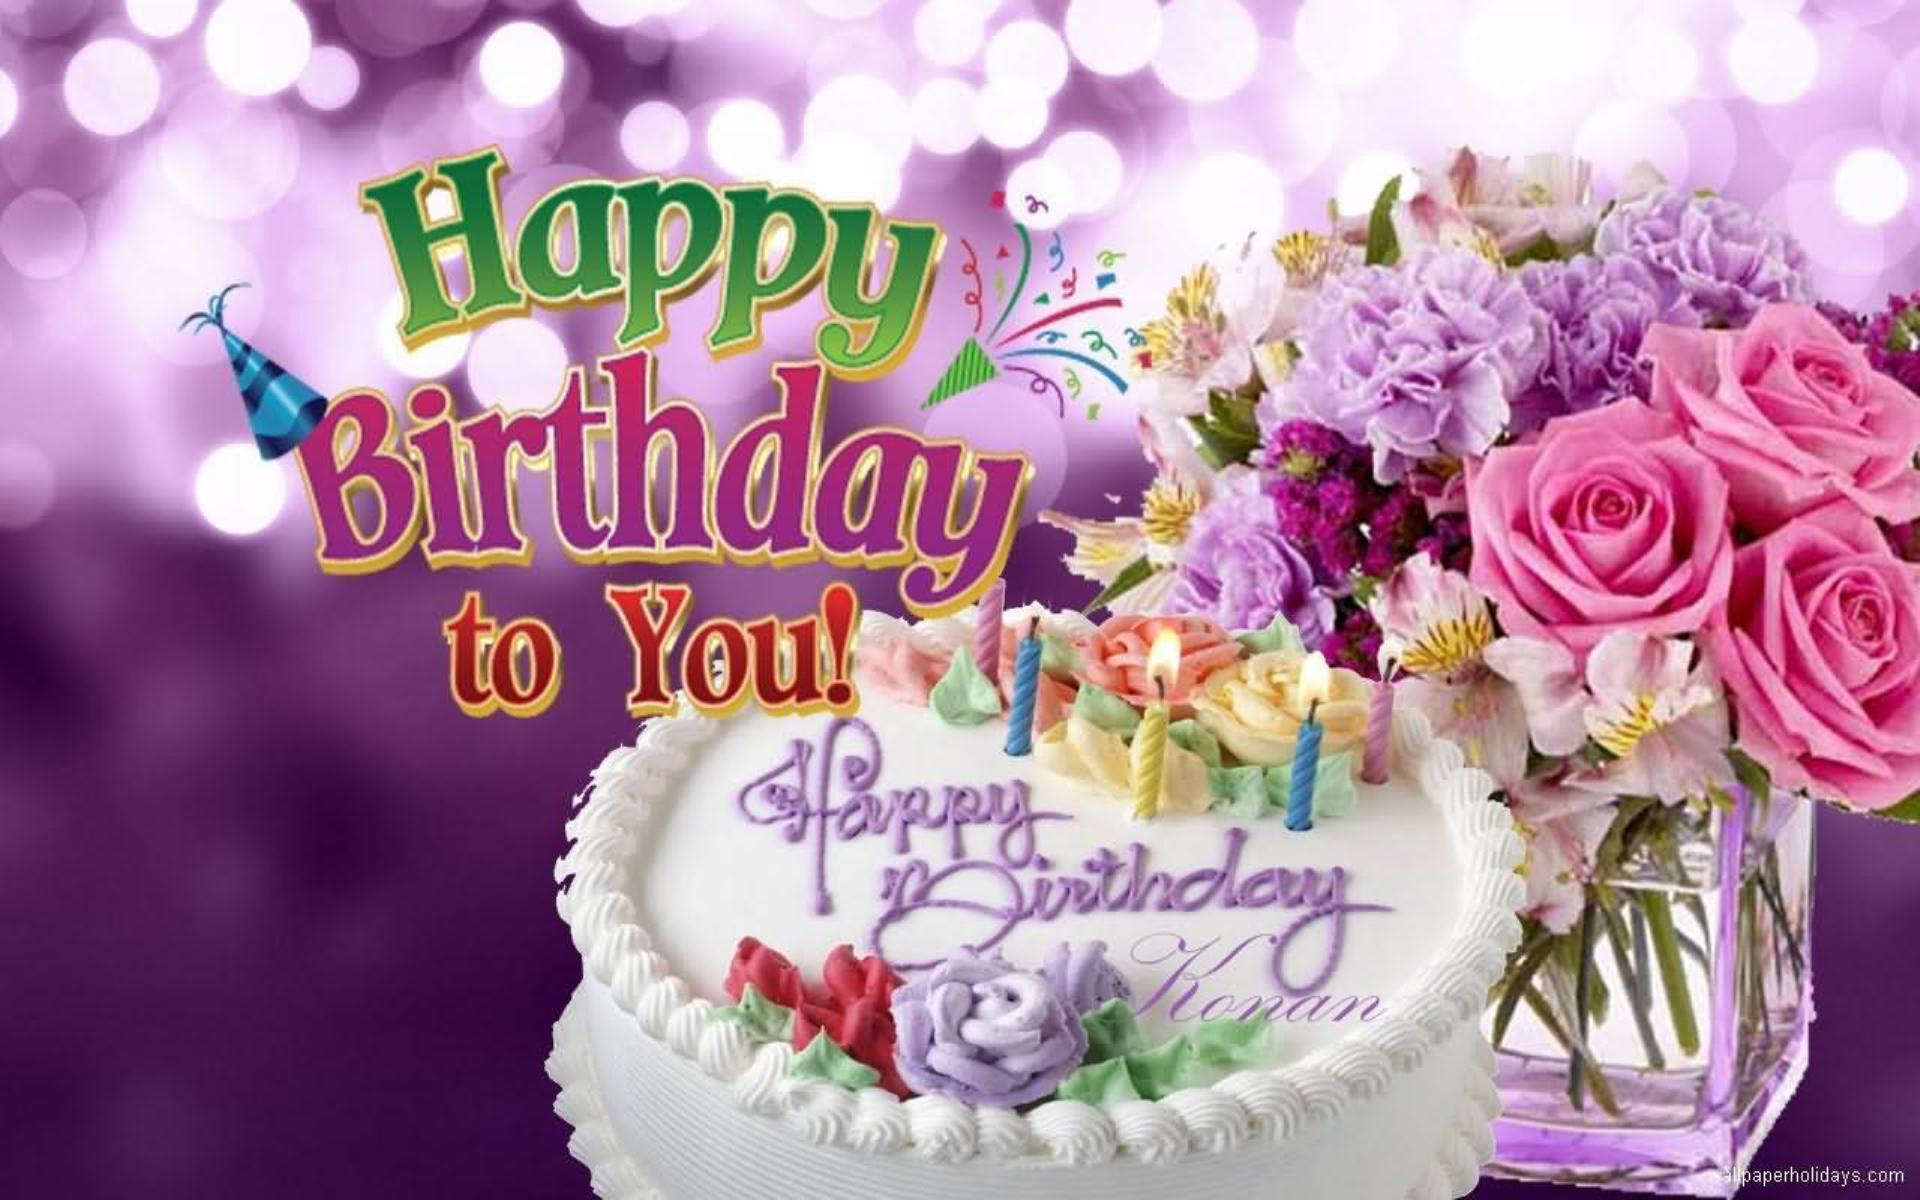 Wallpaper download birthday - Happy Birthday Image Download